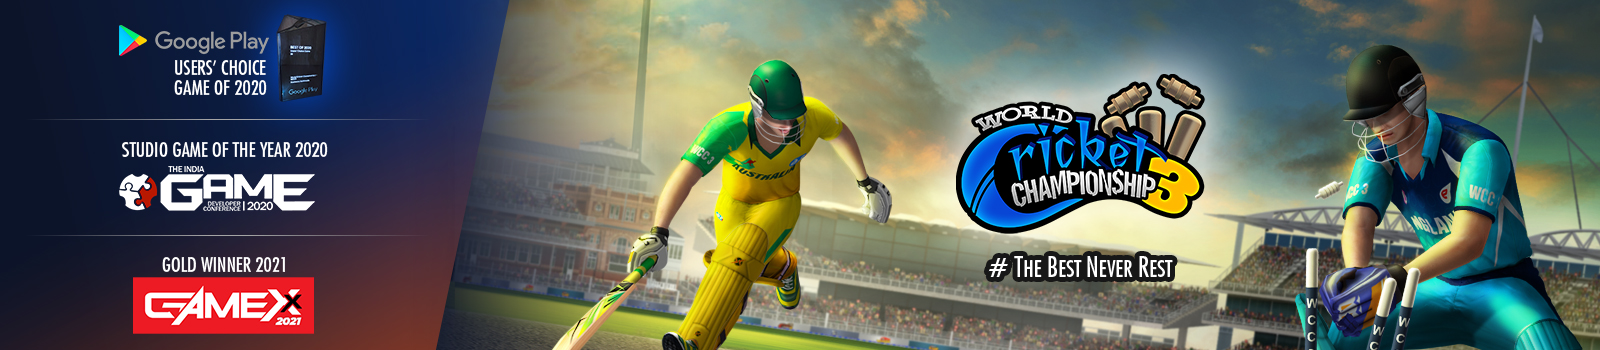 WCC3 is a sequel to the World's No. 1 mobile cricket game